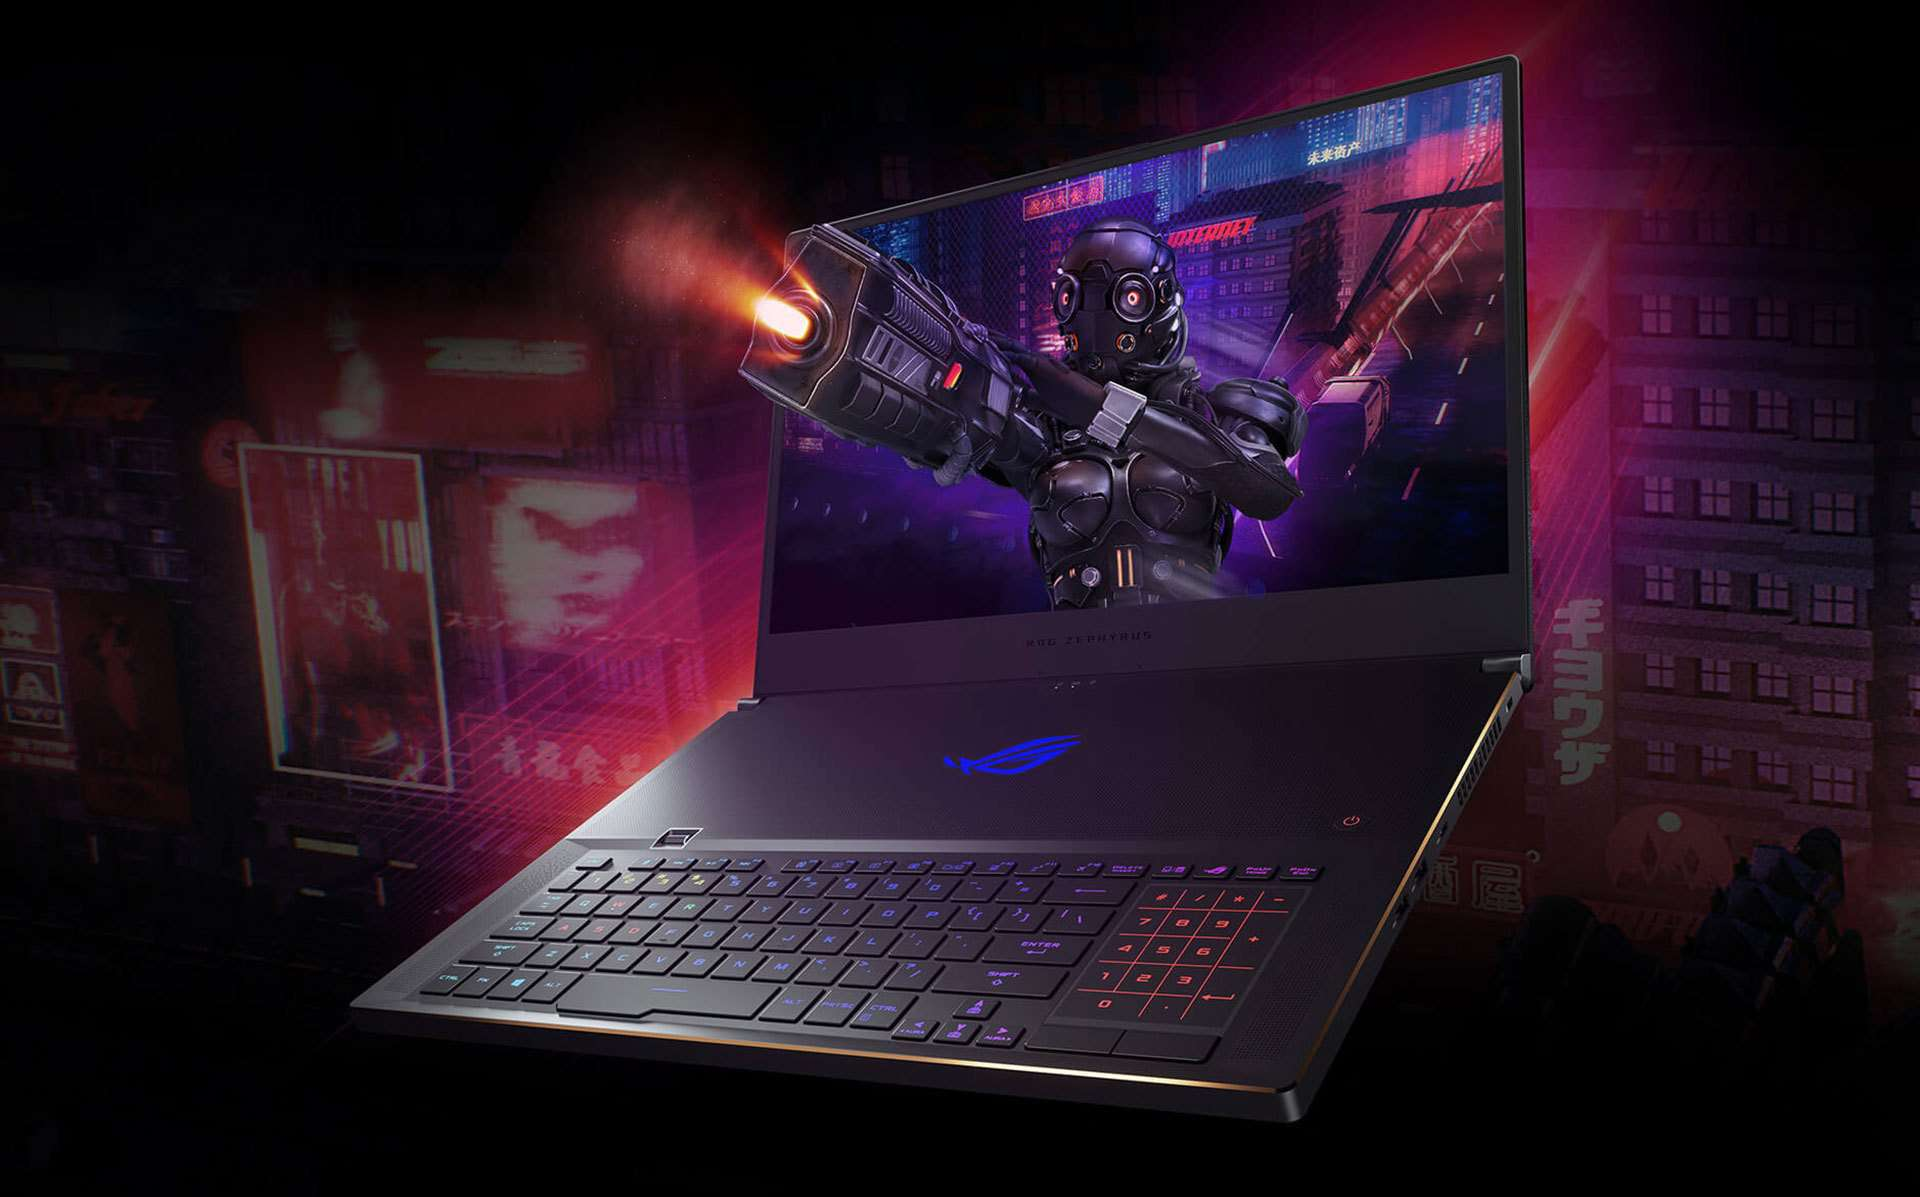 Gaming laptop is dominant with 1080p display, even with high-end laptops